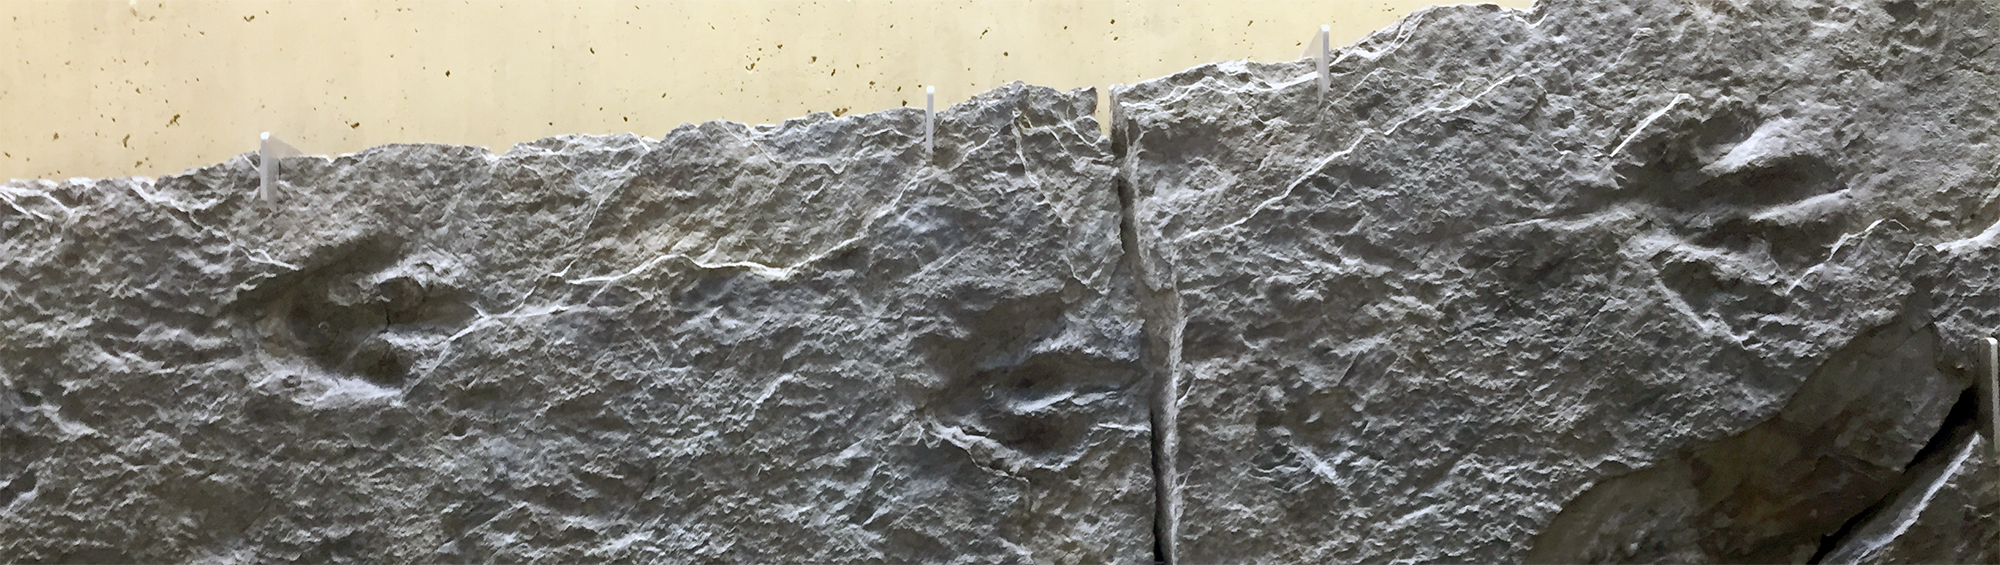 Jurassic-aged dinosaur footprints on display in Snee Hall on the Cornell University camps. These were collected from Connecticut or Massachusetts.